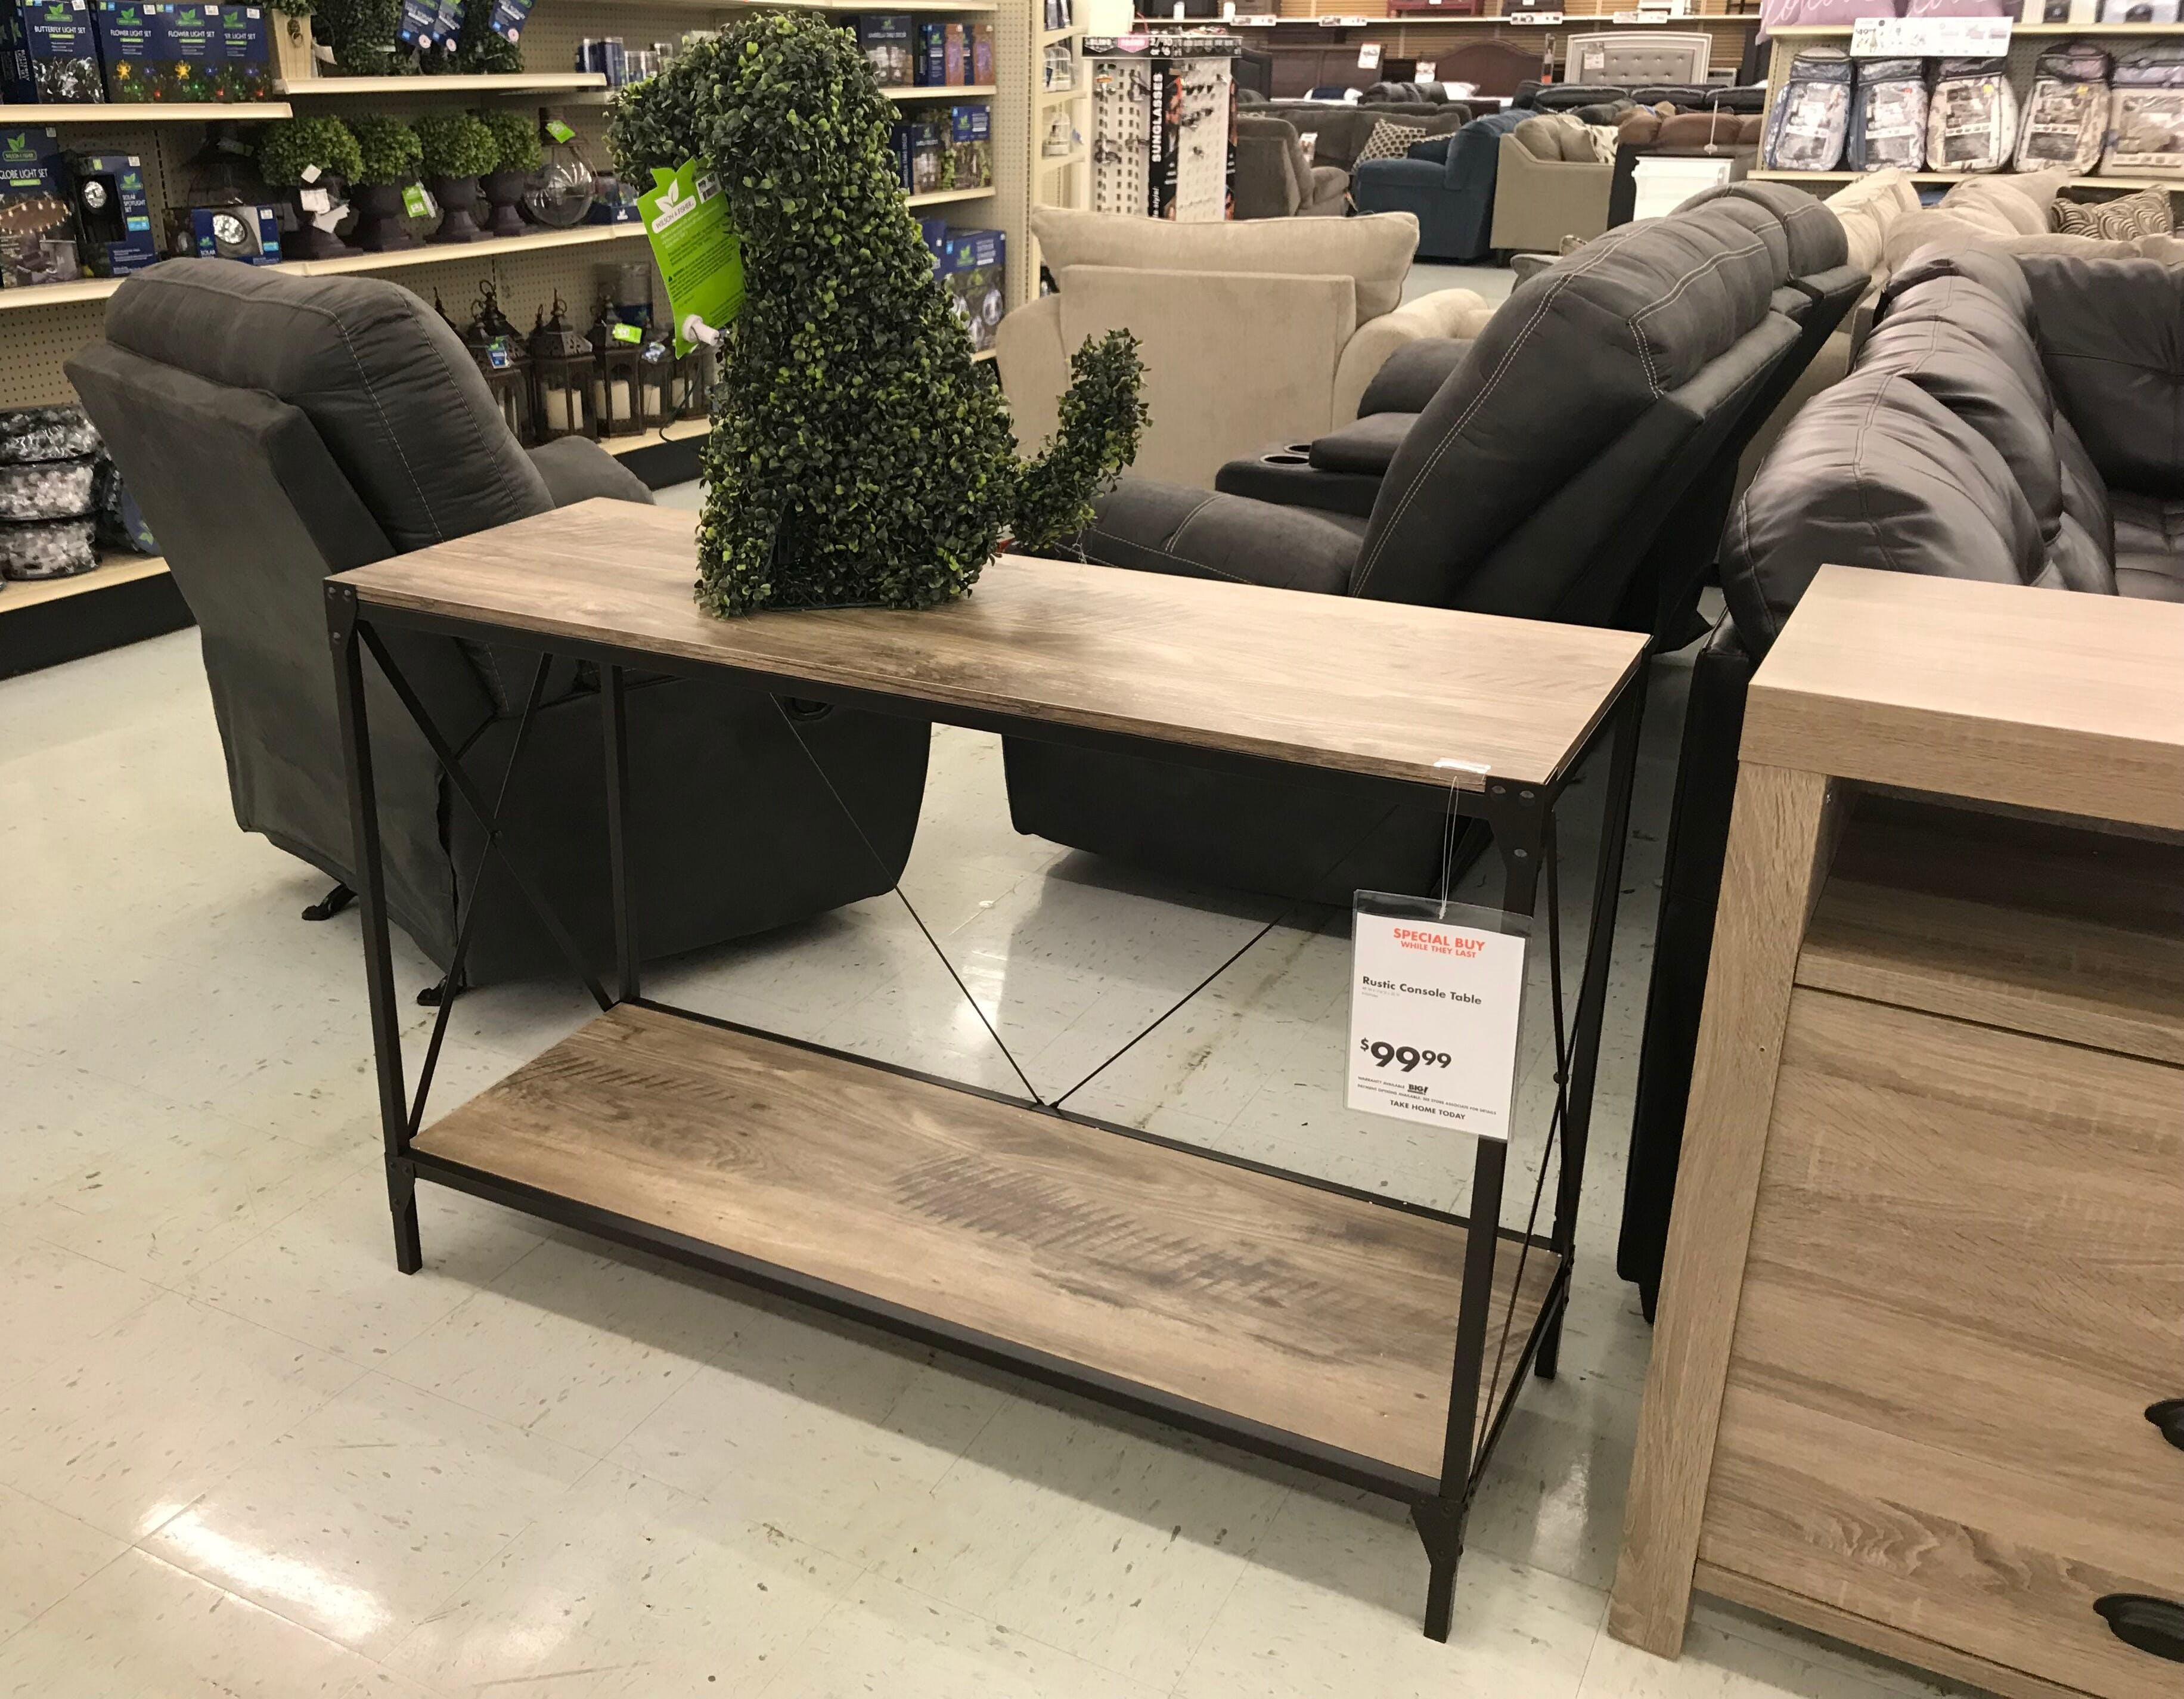 100 Off 500 At Big Lots Save On Sectionals Farmhouse Furniture The Krazy Coupon Lady